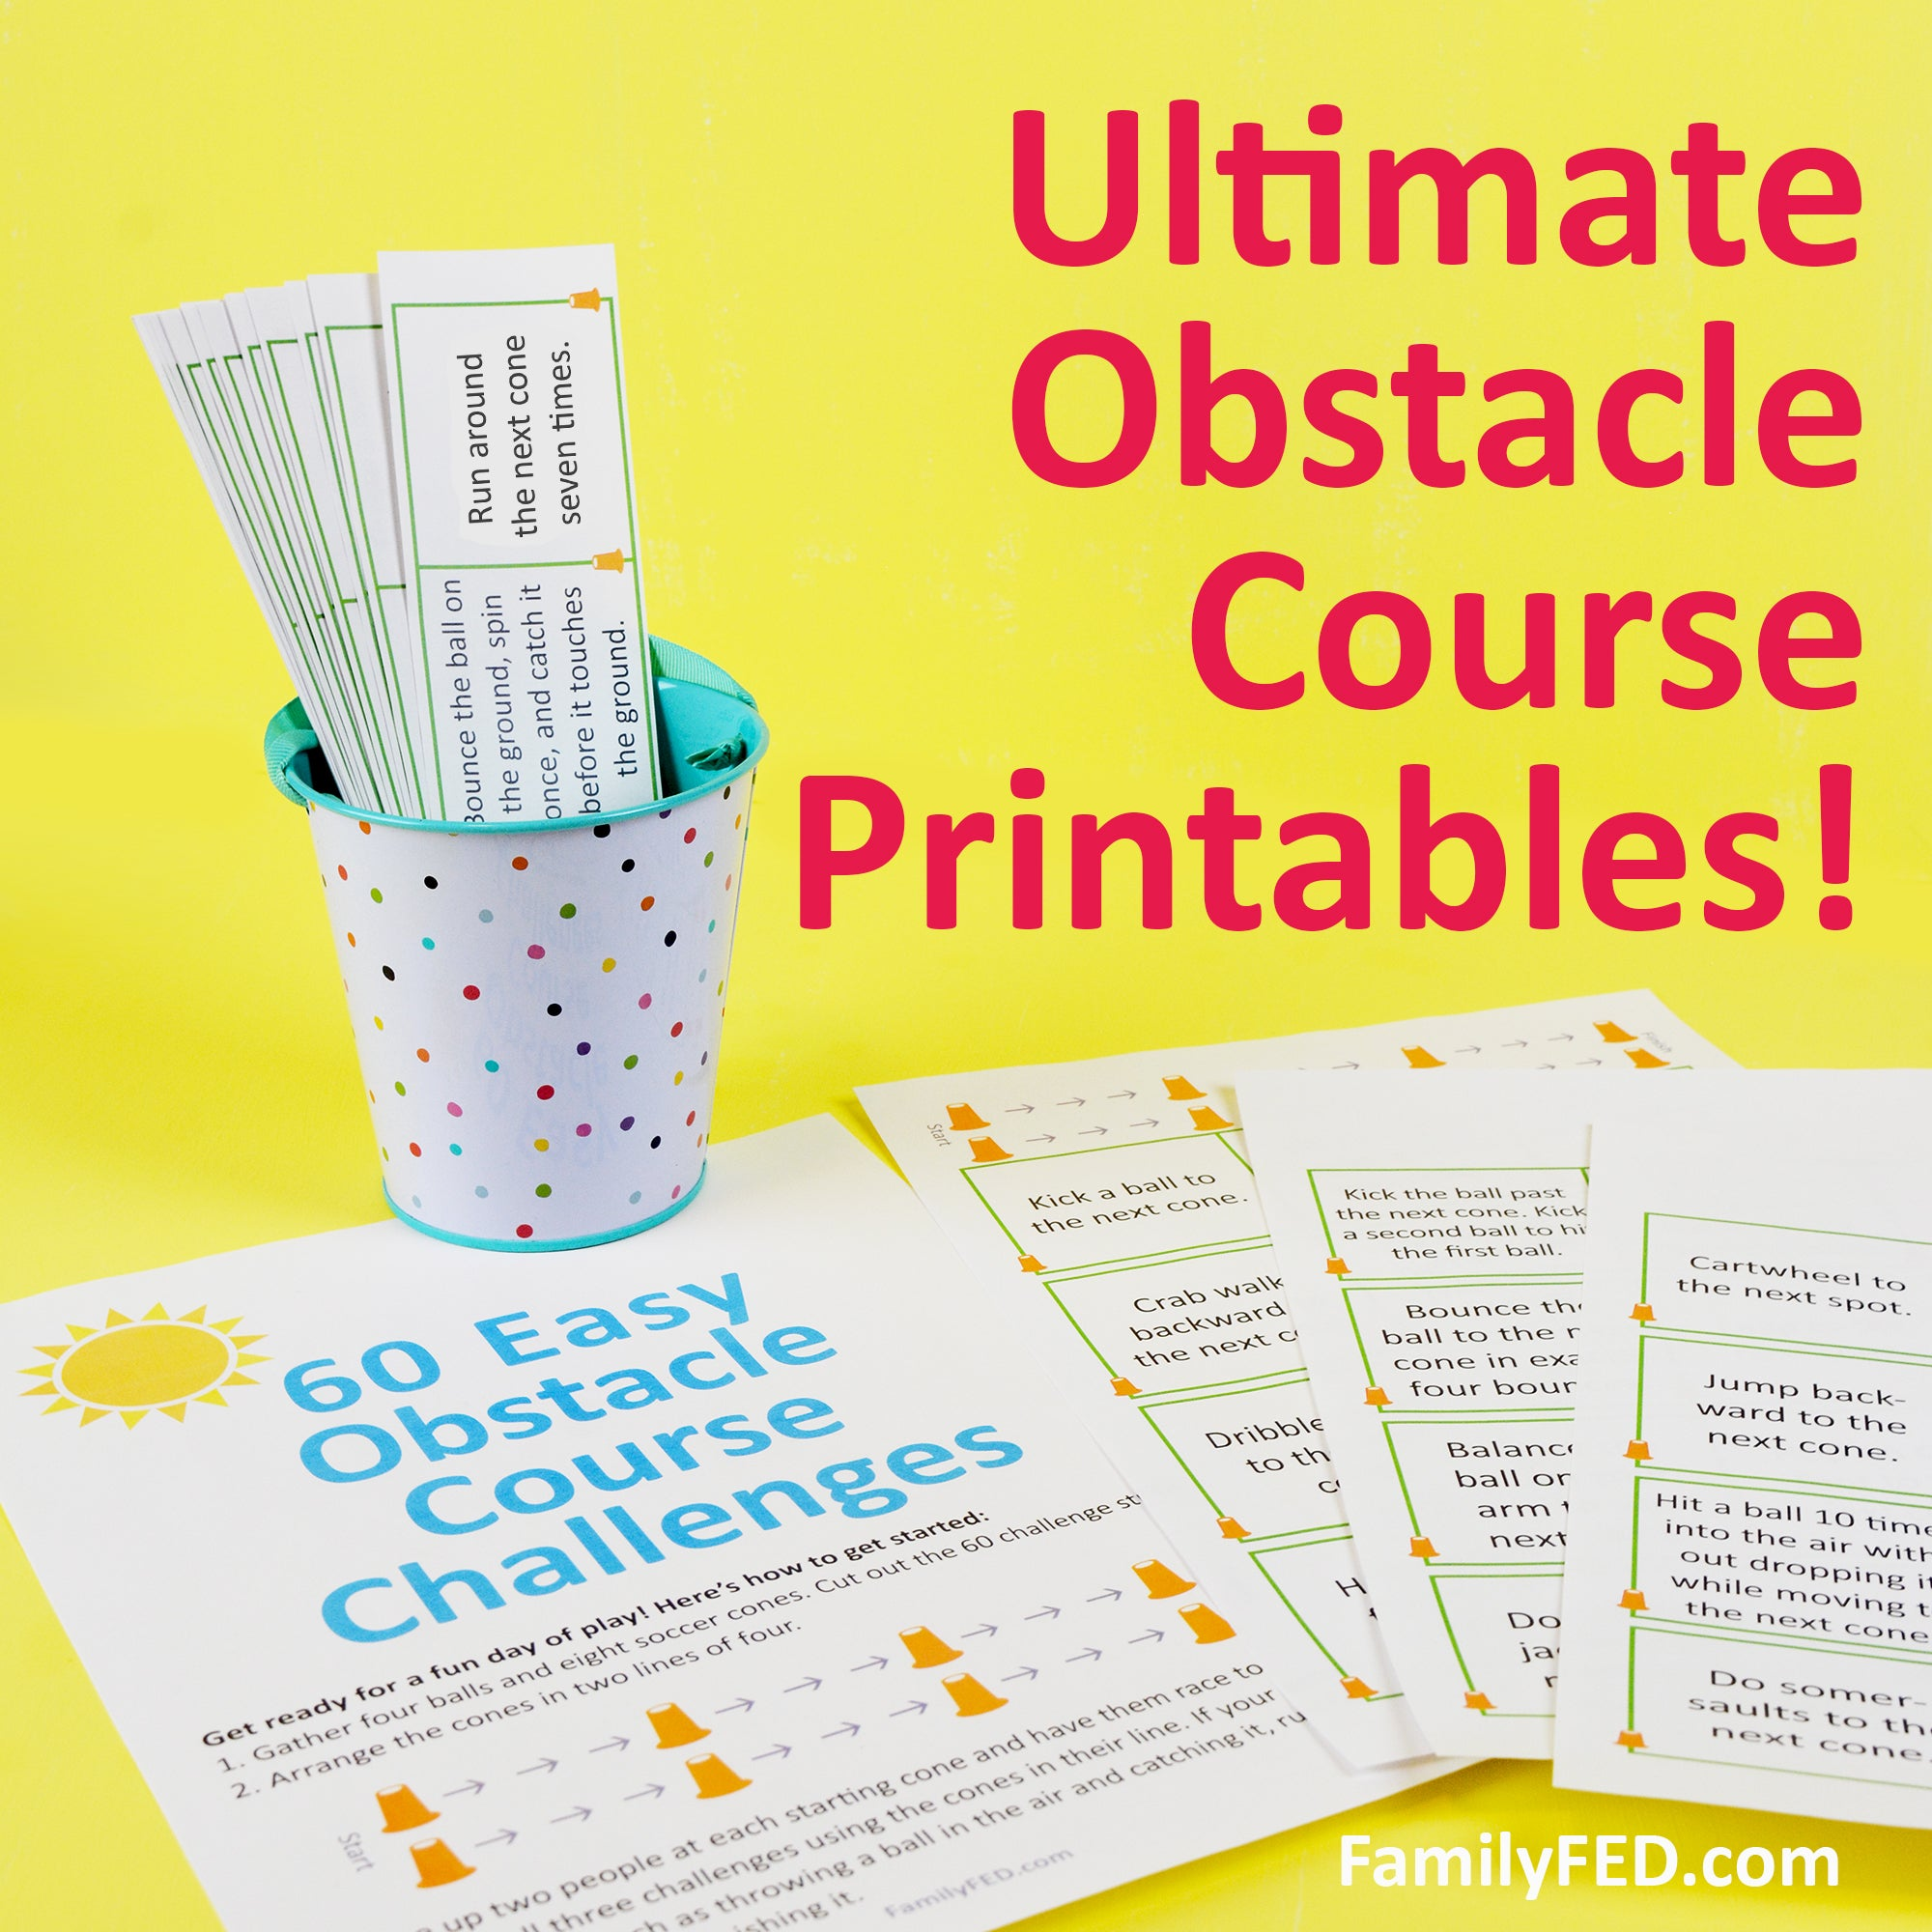 60 Easy & Fun Outdoor Obstacle-Course Challenge Printables for Summer Play